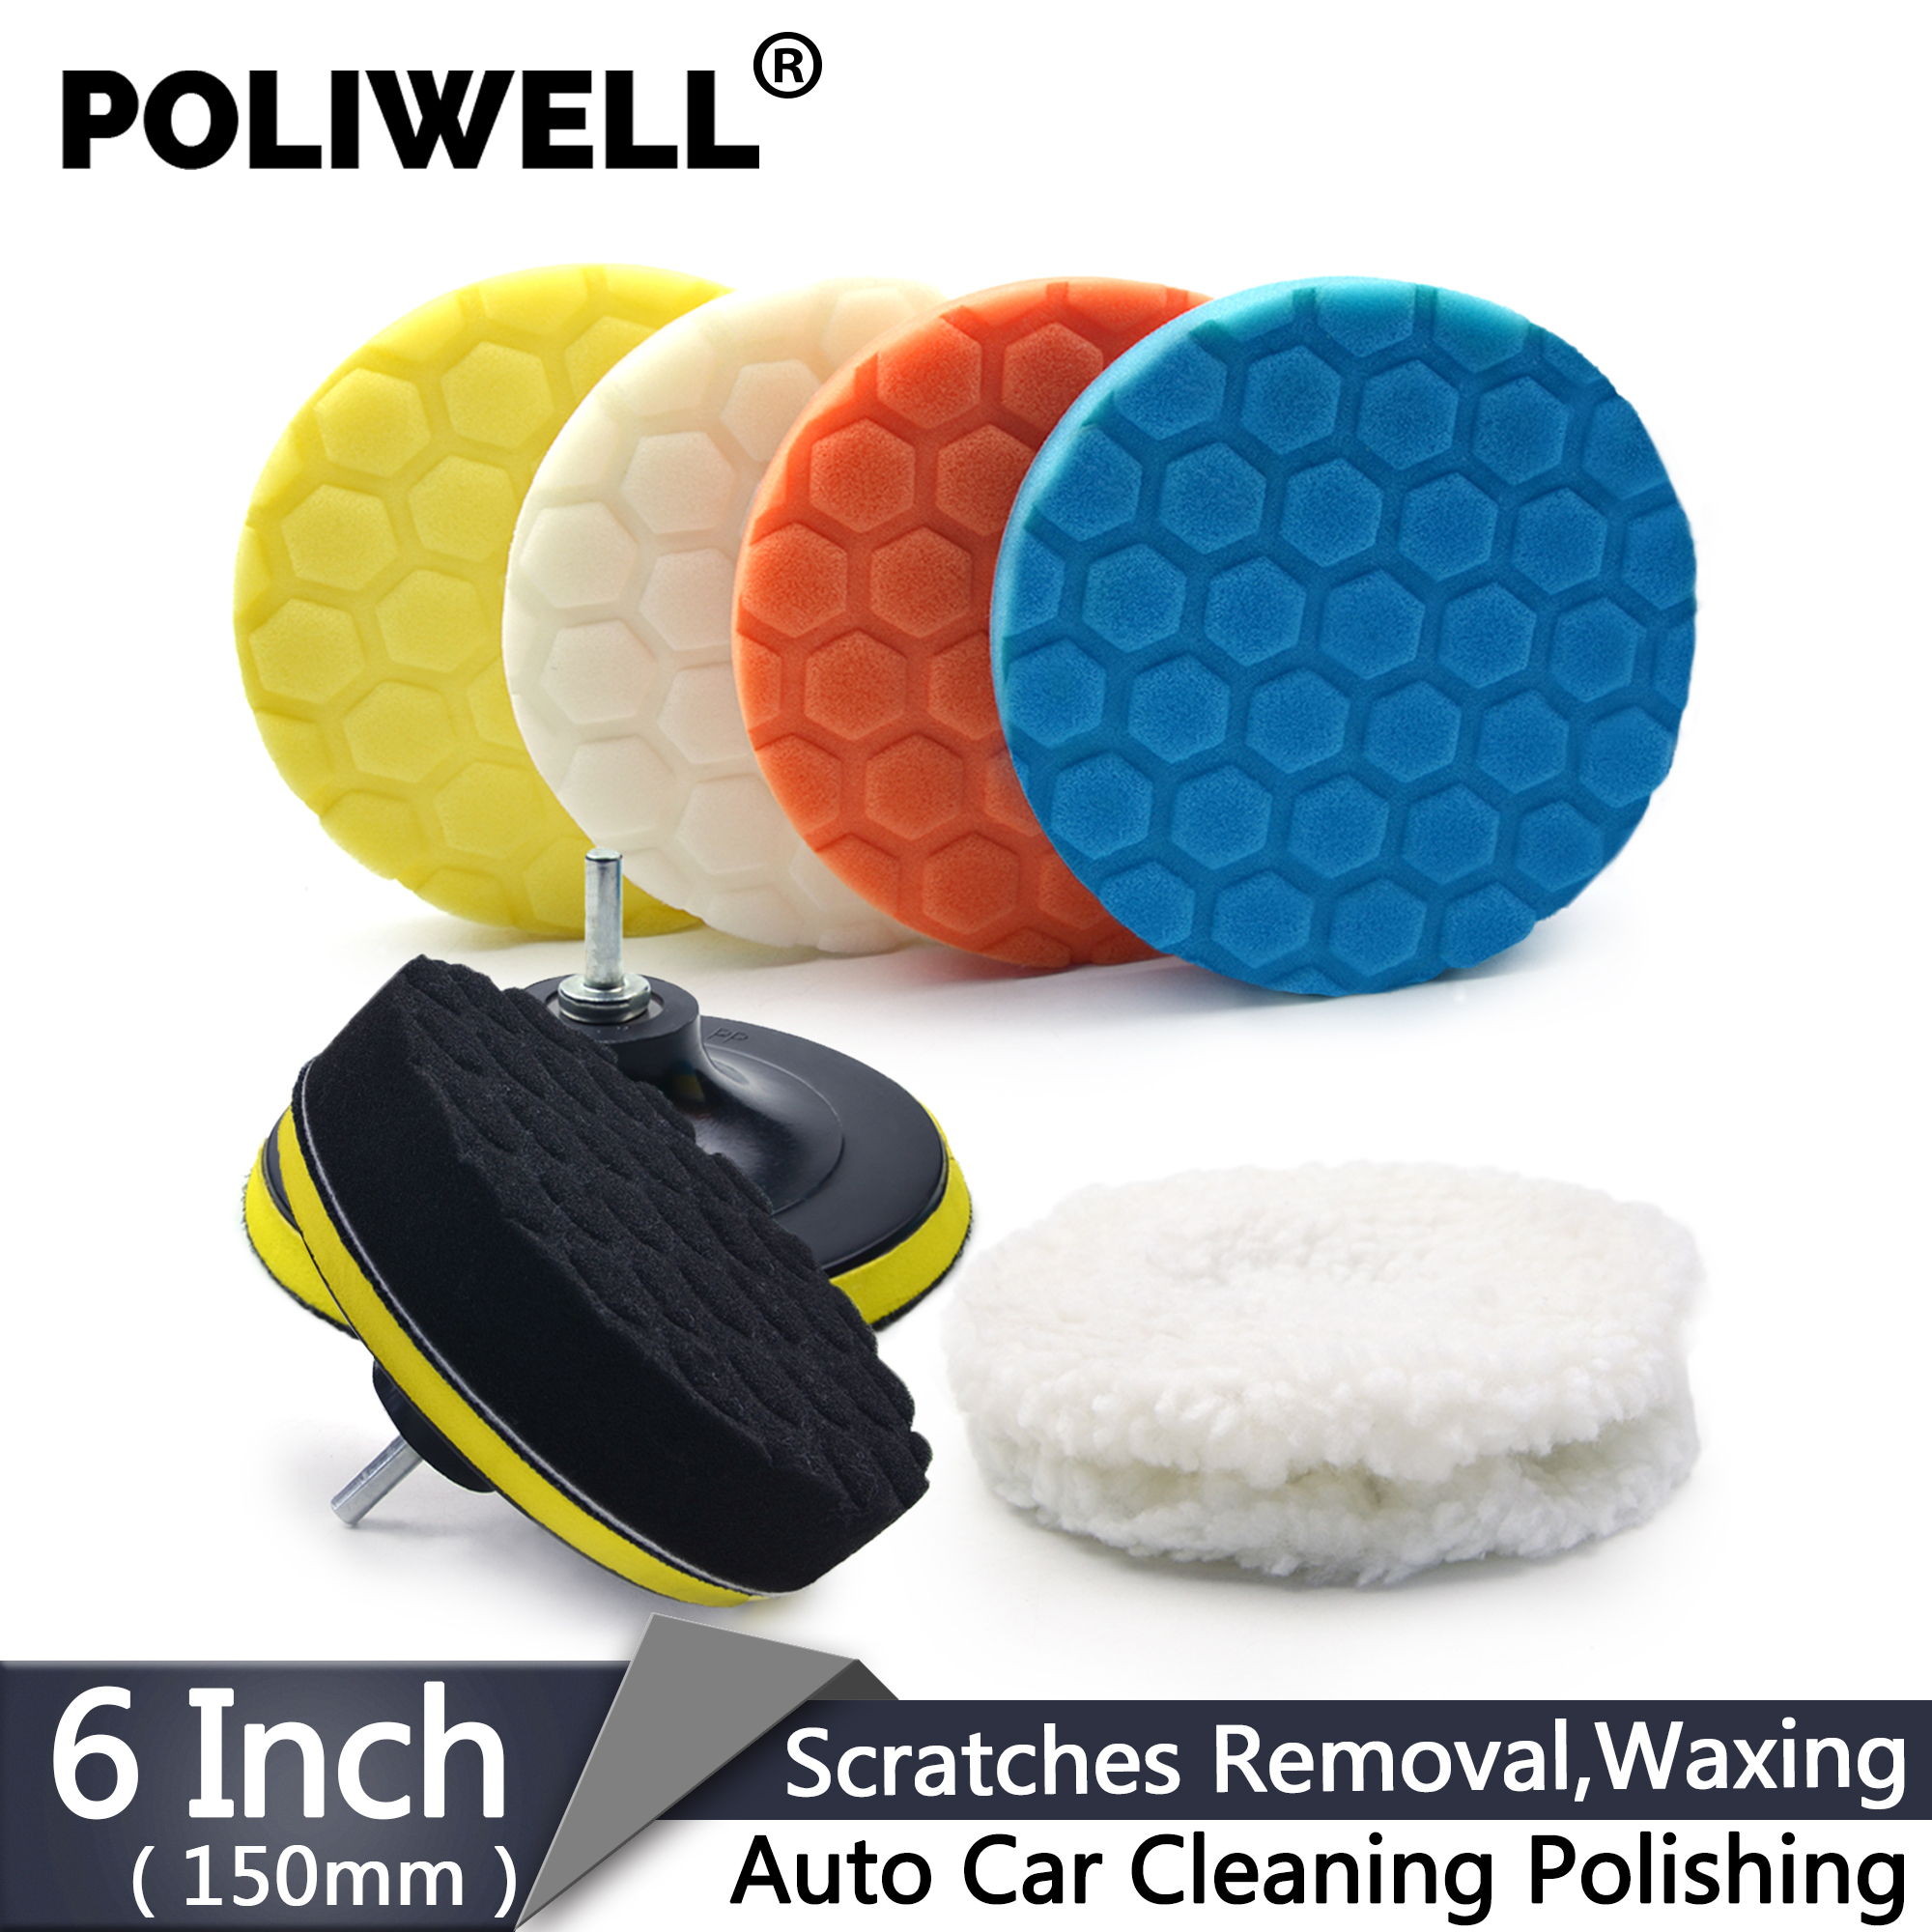 6 Inch Car Polishing Kit 11PCS/Set Buffing Sanding Sponge Pads + Wool Bonnet Pads + 8mm M14 Drill Adapter For Electric Drill